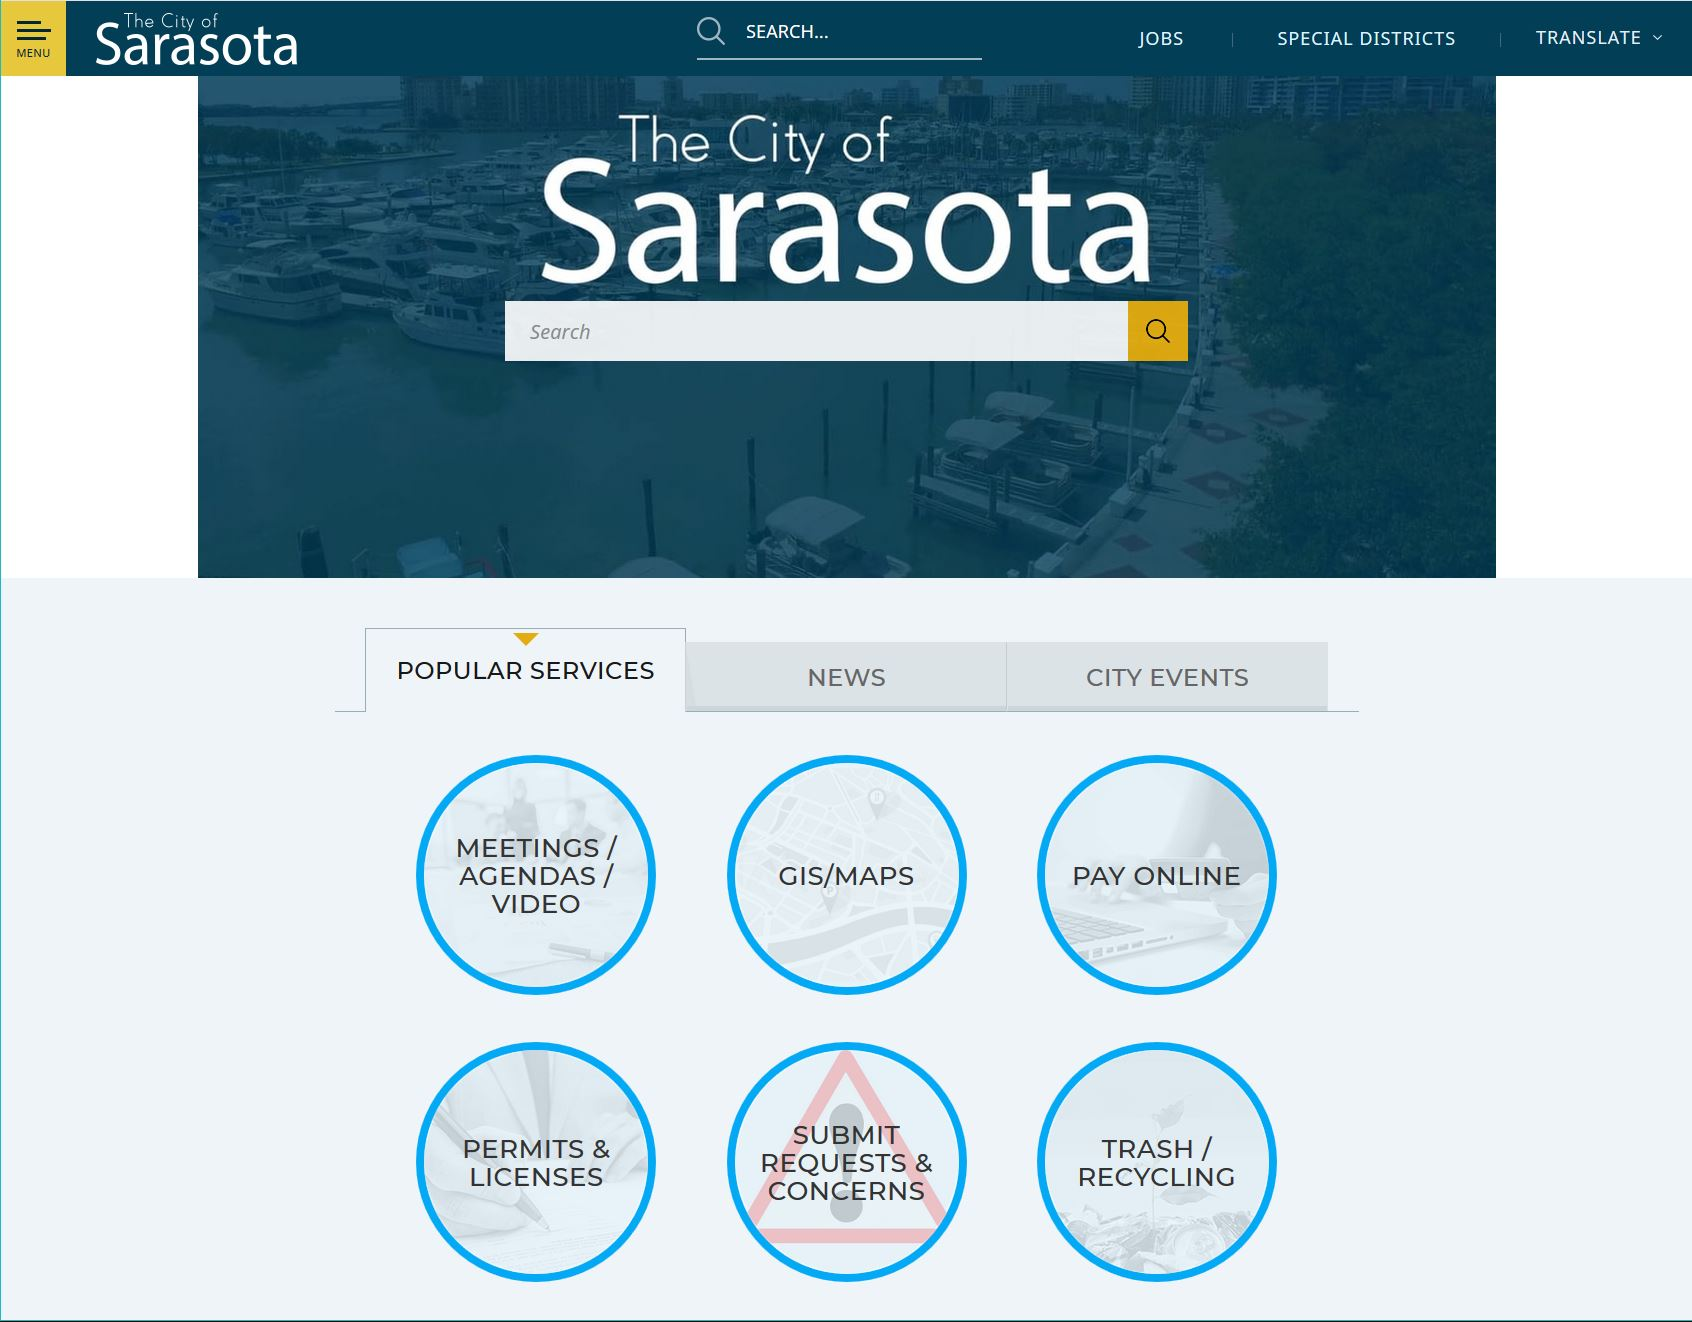 City launches new, redesigned website   News List   City of ... on cartography maps, wria maps, linn county iowa flood maps, web maps, arcgis maps, shapefile maps, louisa county va plat maps, 5 types of thematic maps, satellite maps, geography maps, engineering maps, xml maps, geographic literacy maps, geospatial maps, goo maps, library maps, science maps, geoportal maps,